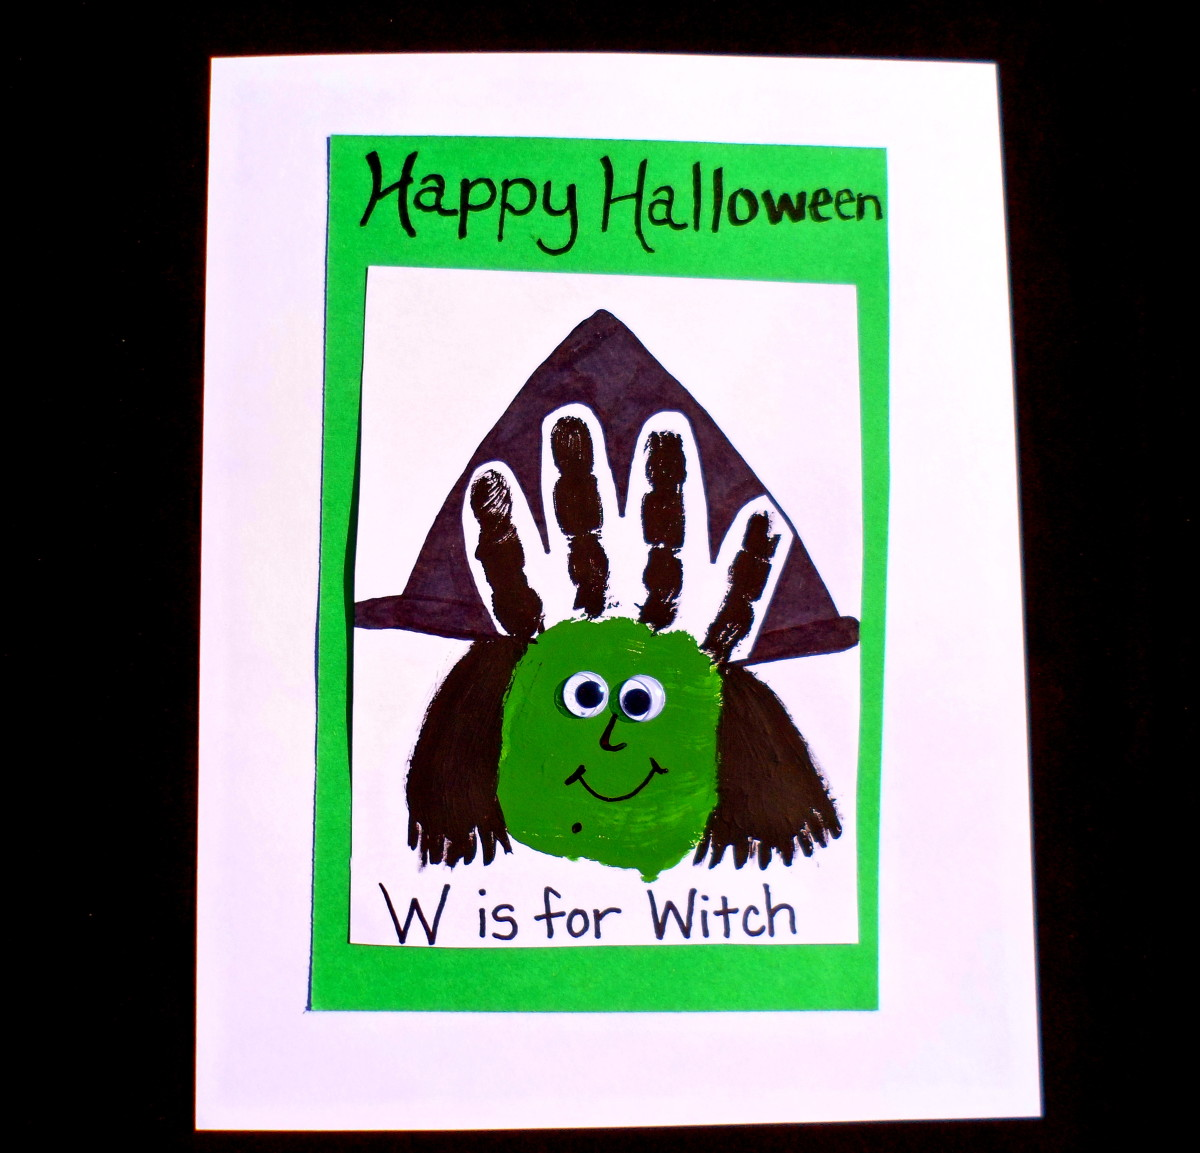 A handprint with green and black paint creates a cute witch.